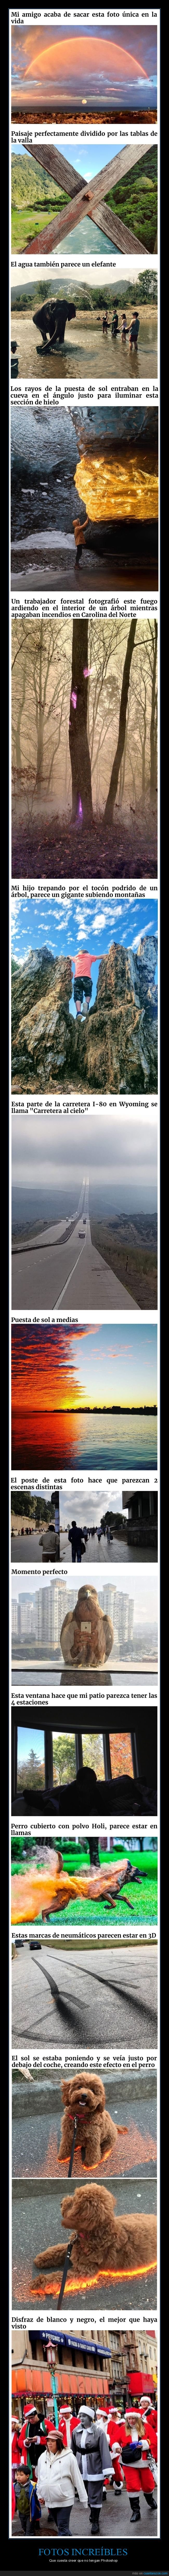 fotografía,fotos,sin photoshop